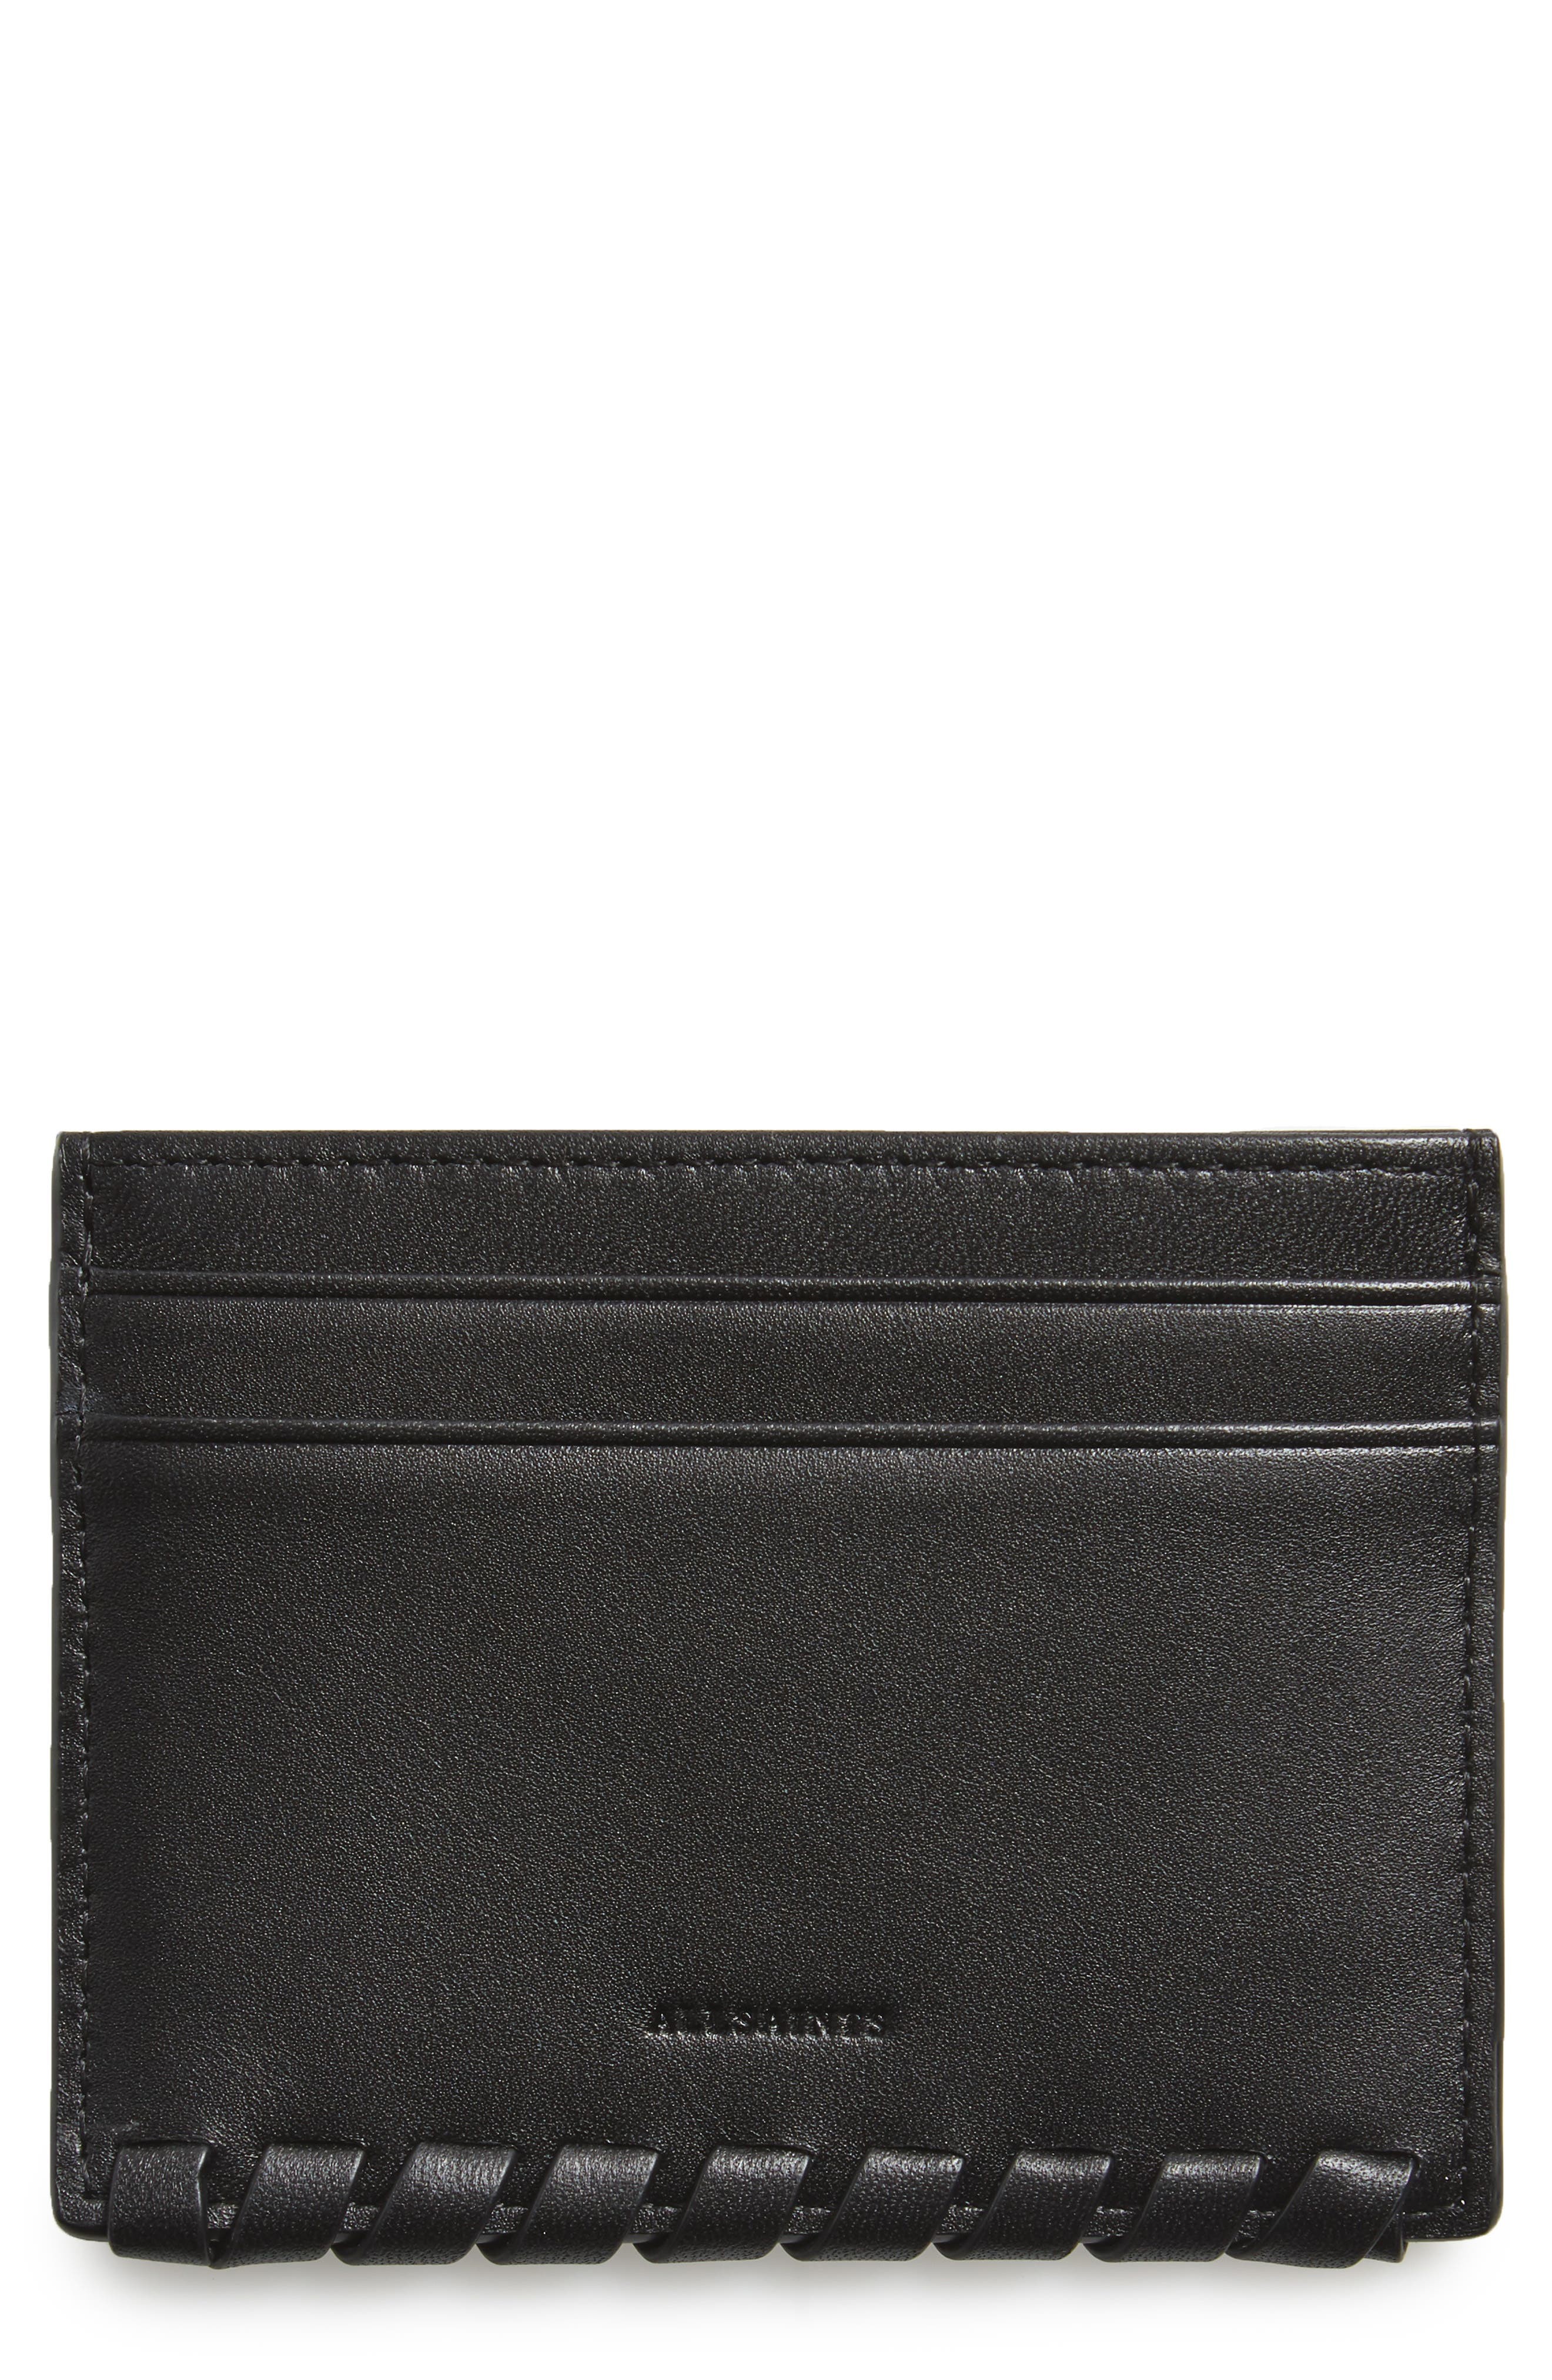 Kita Pebbled Leather Card Case,                             Main thumbnail 1, color,                             001